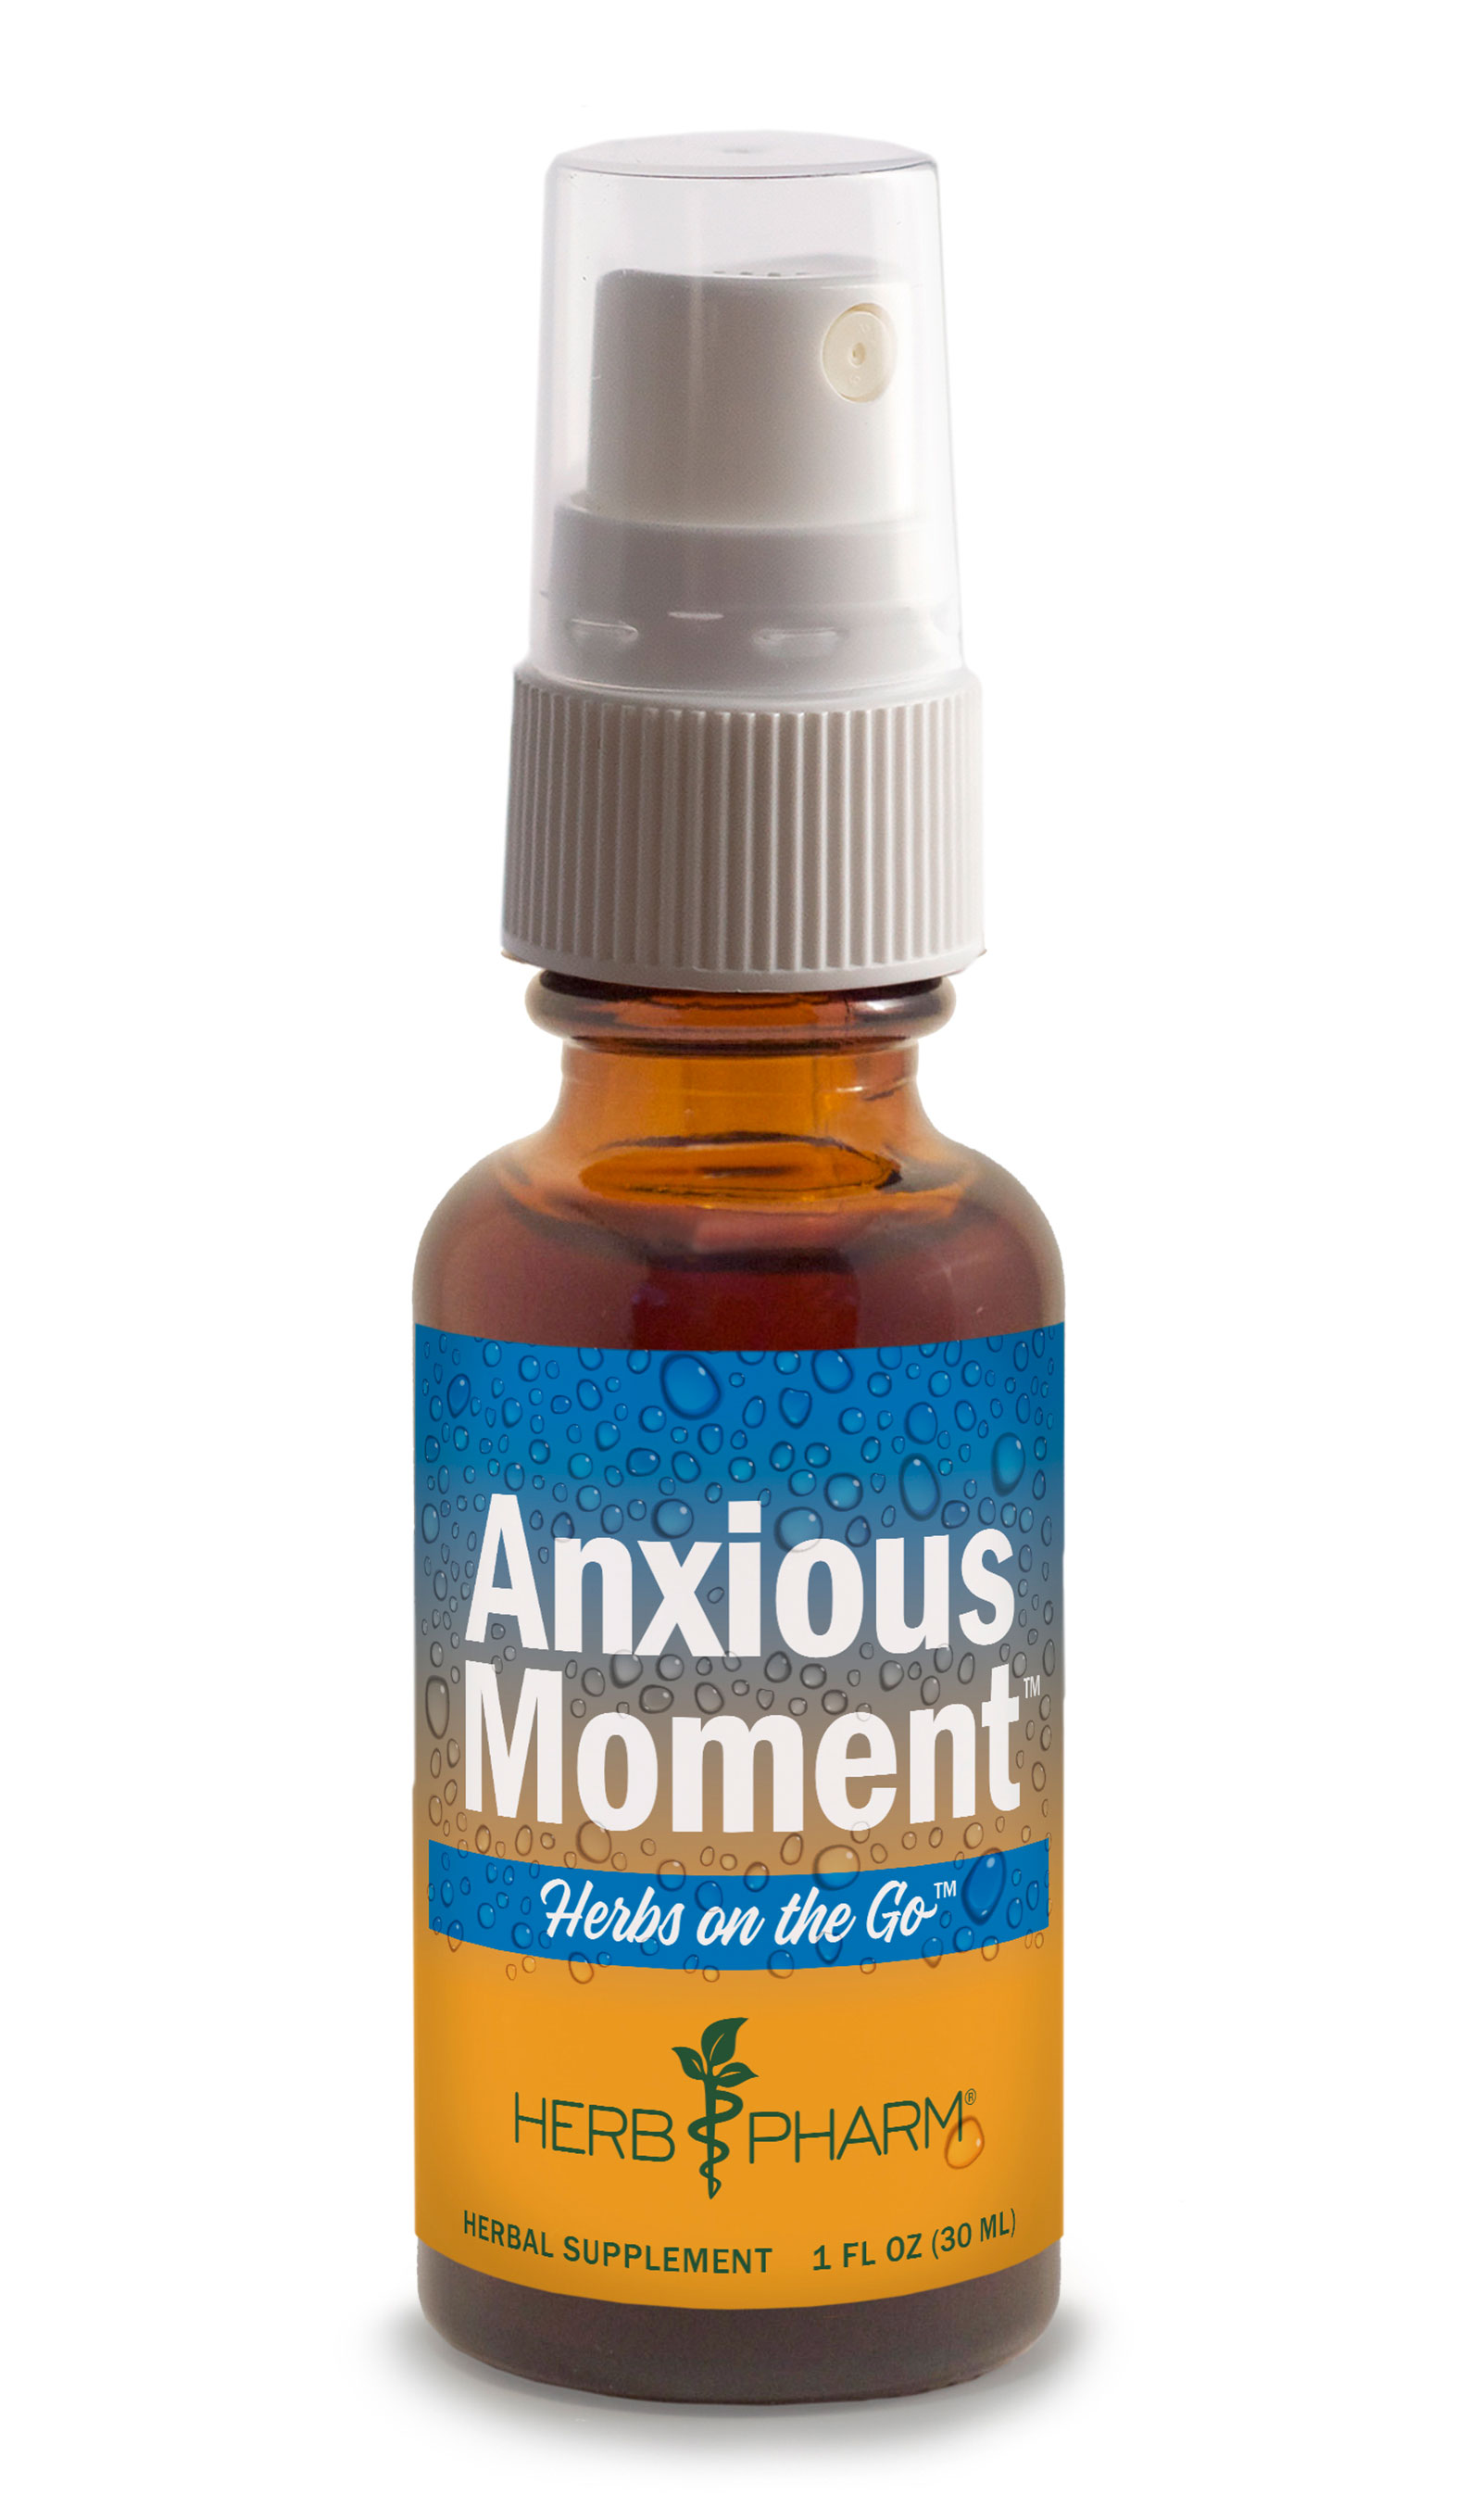 Anxious Moments (Herb Pharm)